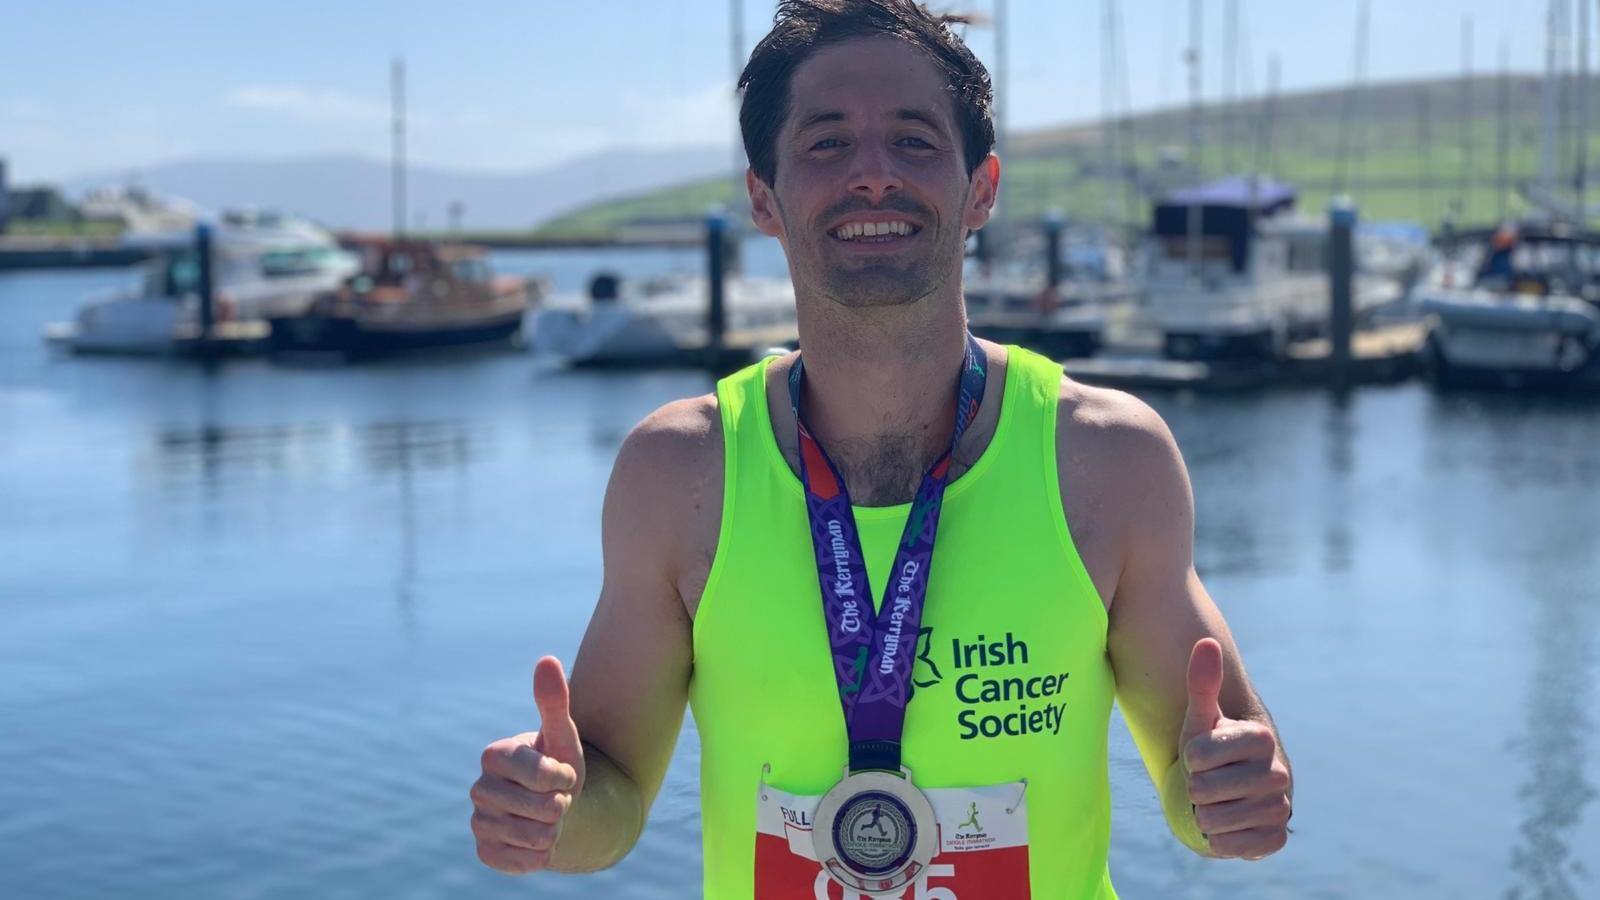 Fundraiser Chris taking part in the Dingle marathon for Irish Cancer Society